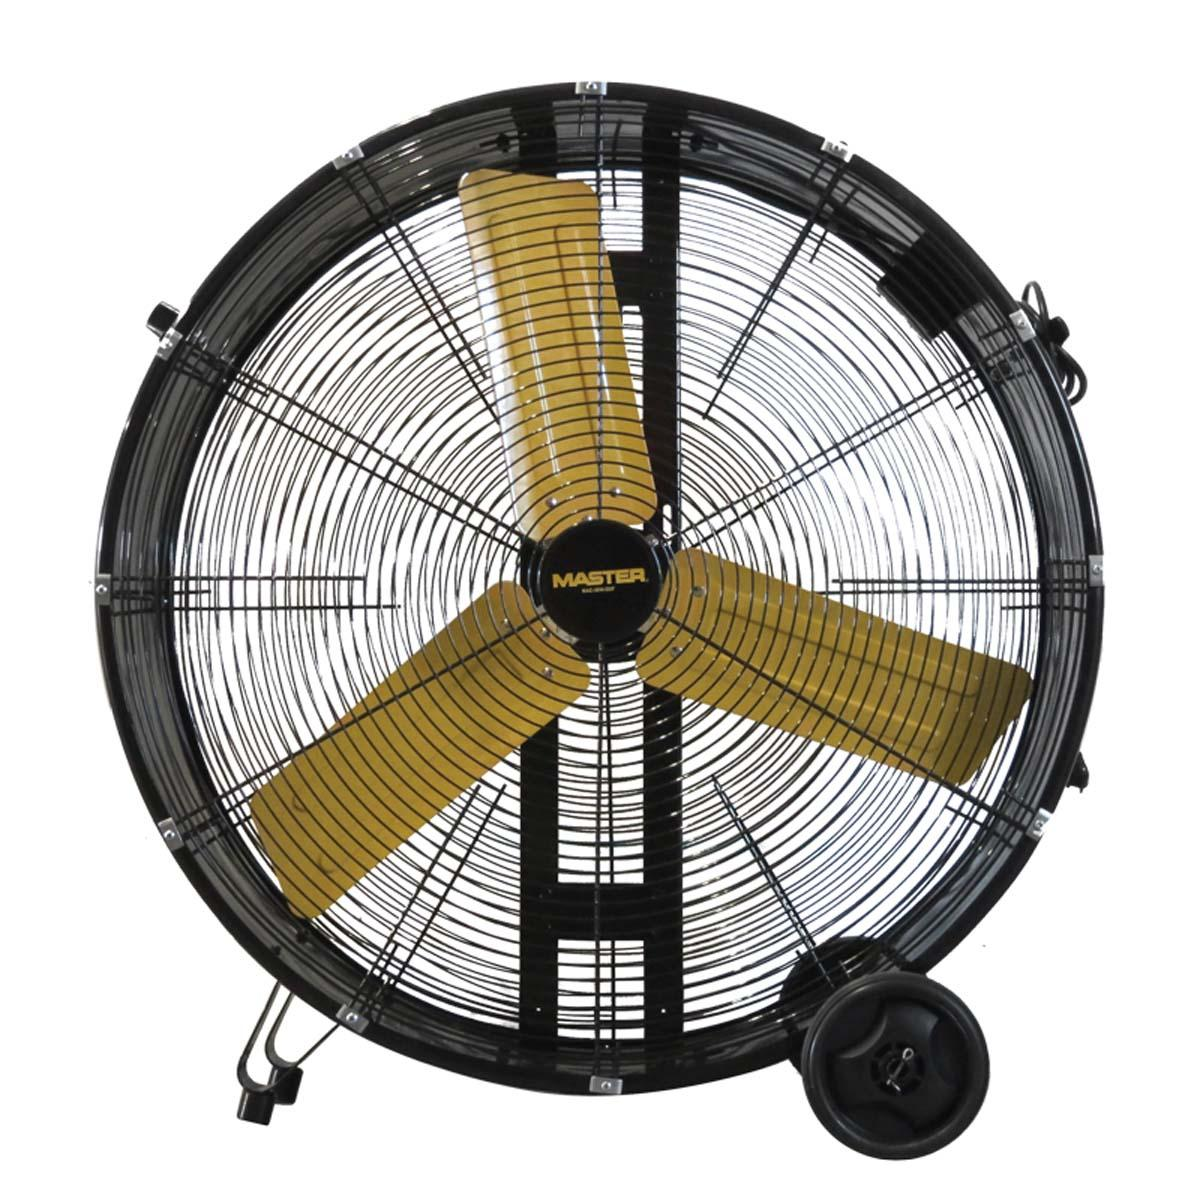 "MASTER 36"" High Capacity Direct Drive Drum Fan"